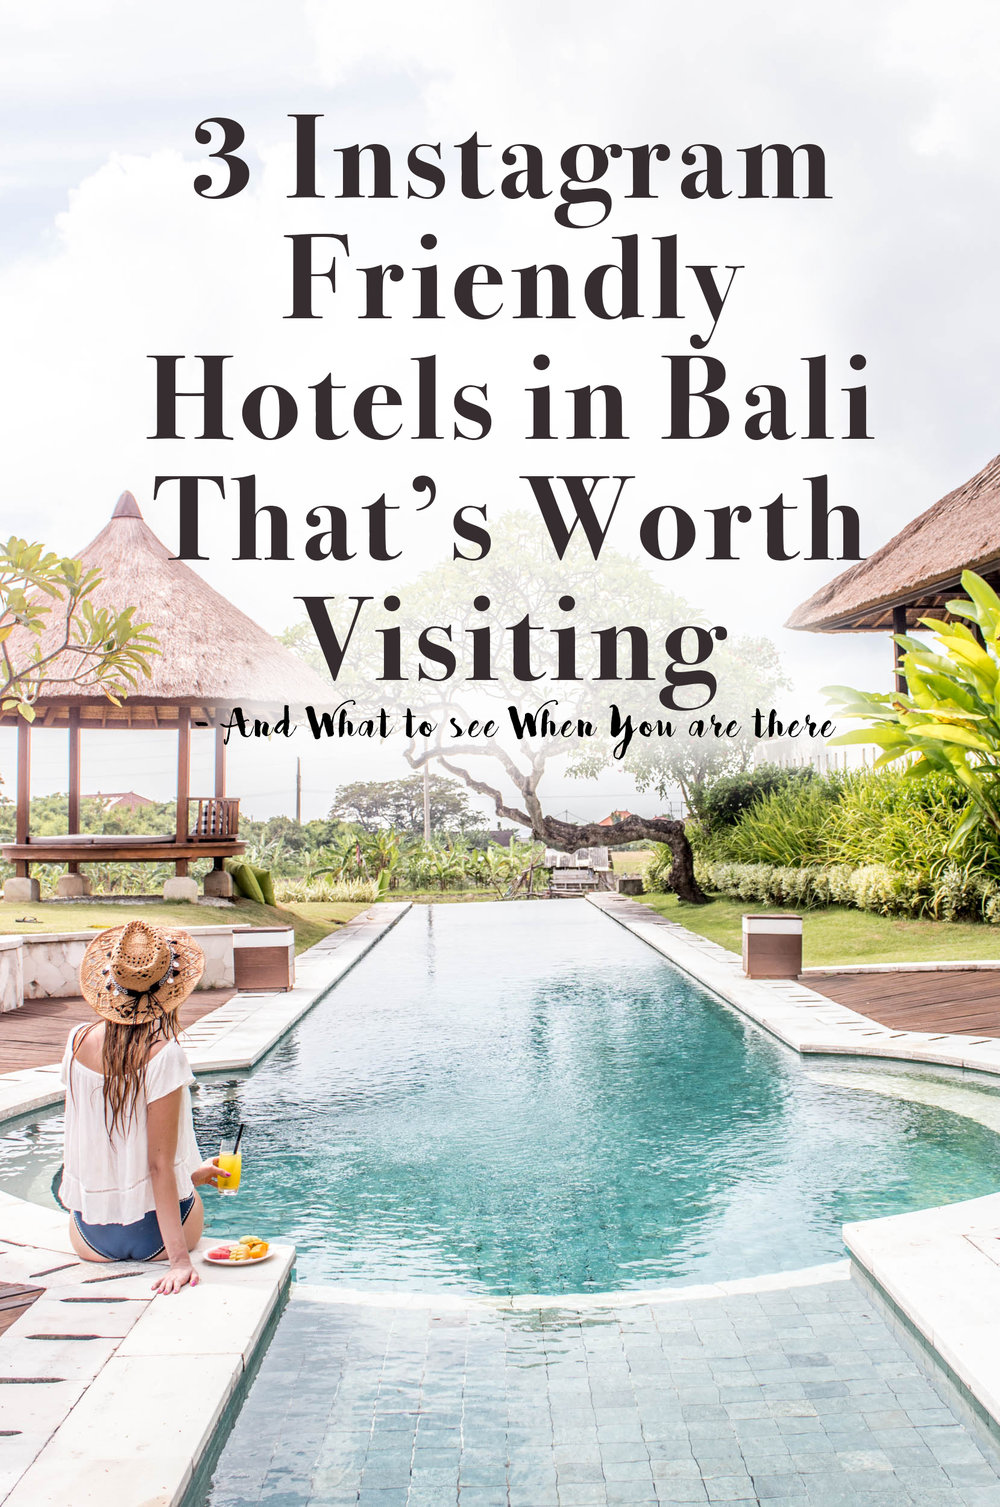 3 Instagram Friendly Hotels in Bali thats worth visiting.jpg